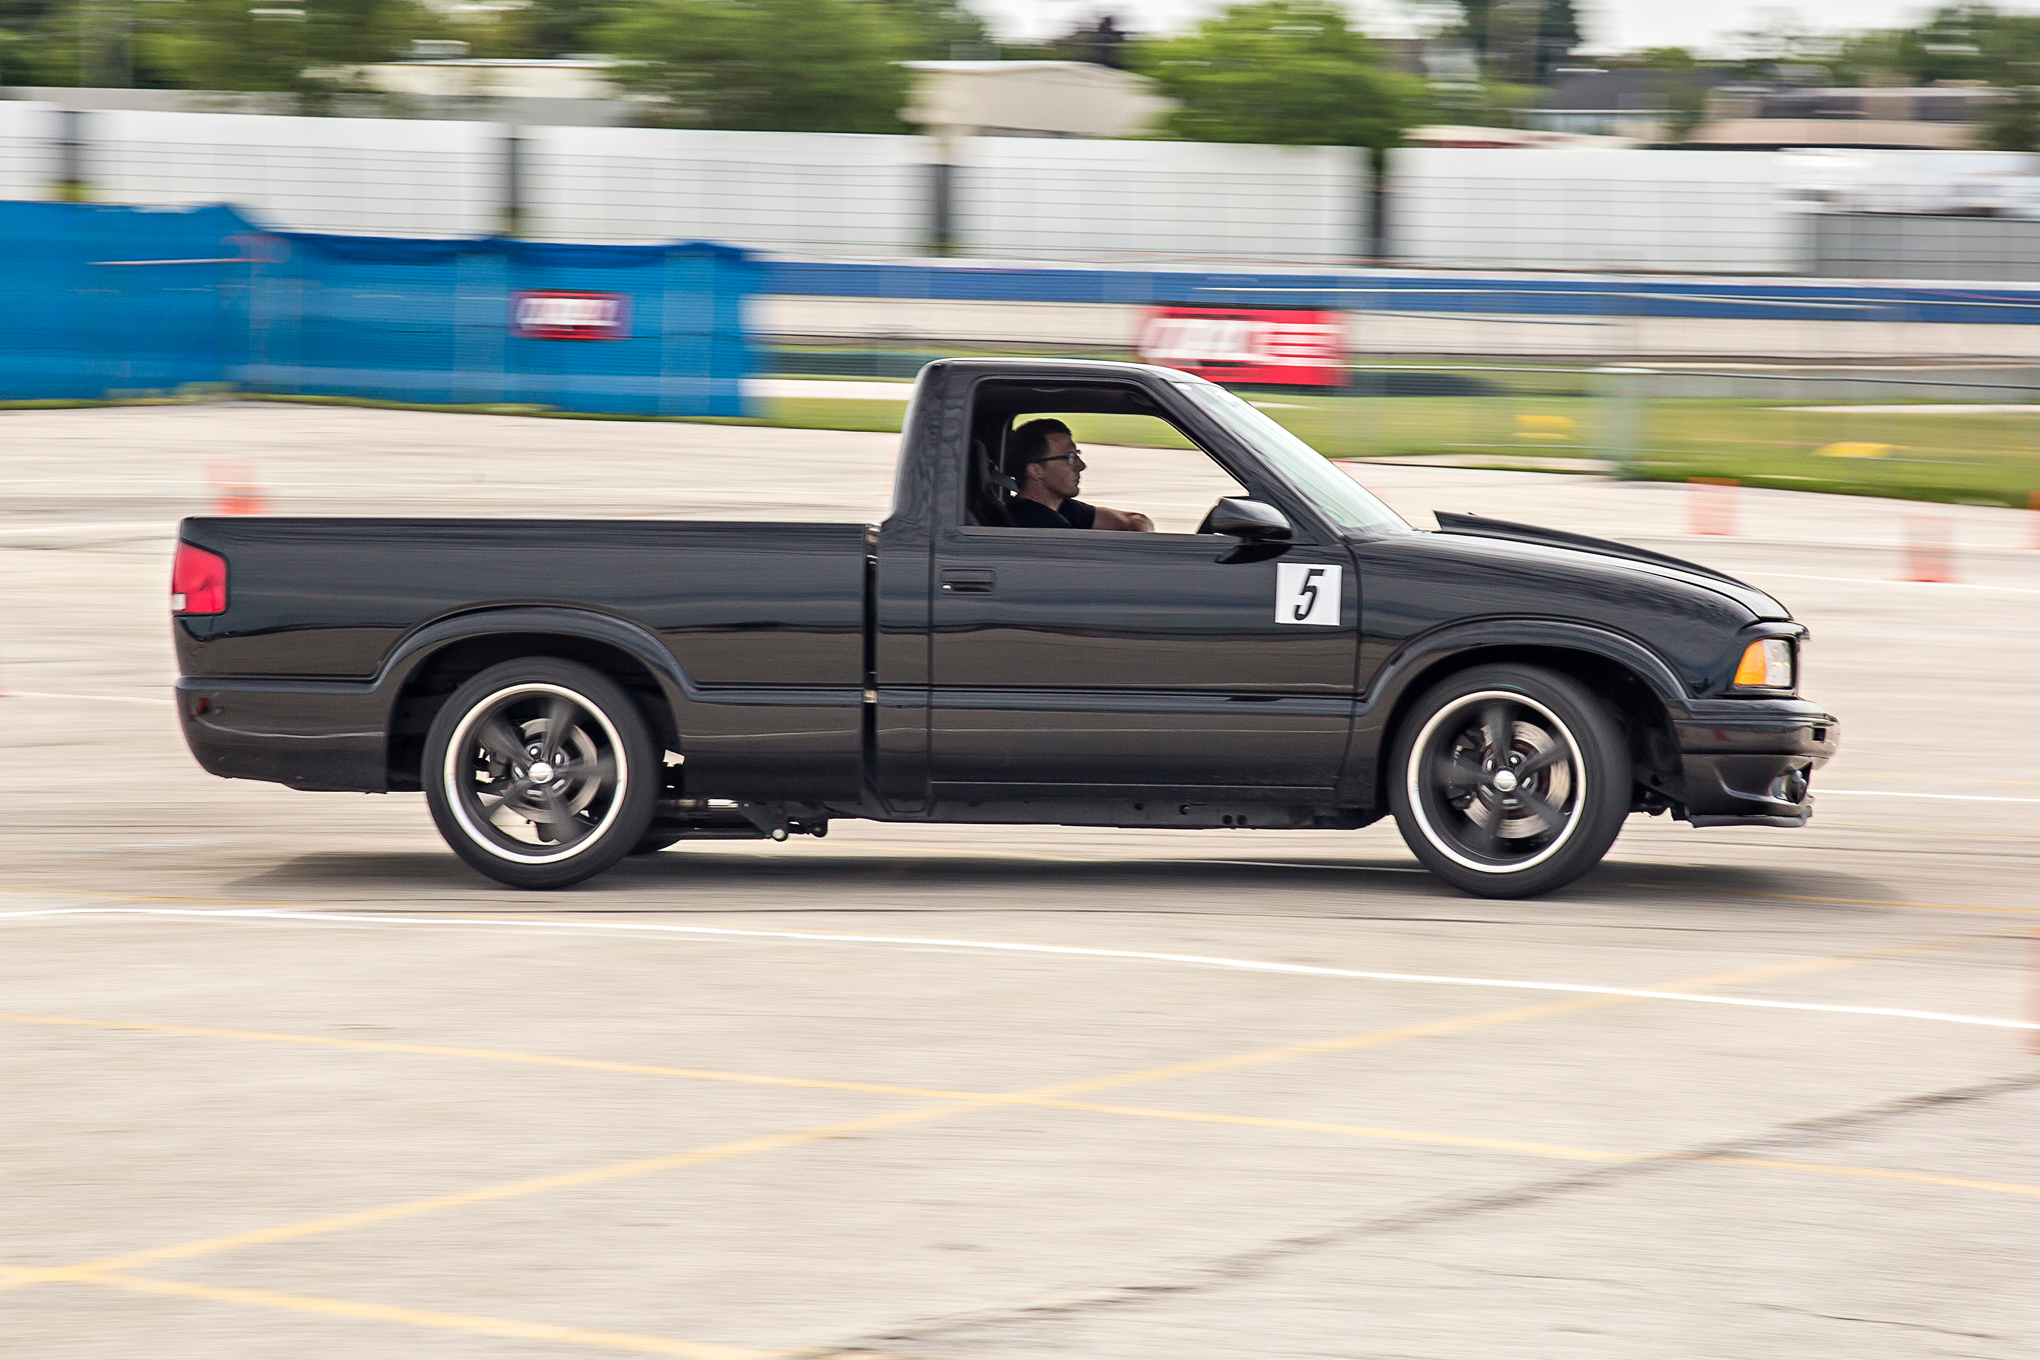 Brad Smith's S10 proved to be a fierce autocrosser. Its F-body donated driveline and Viking Performance shocks allowed the little pickup to hold its own.